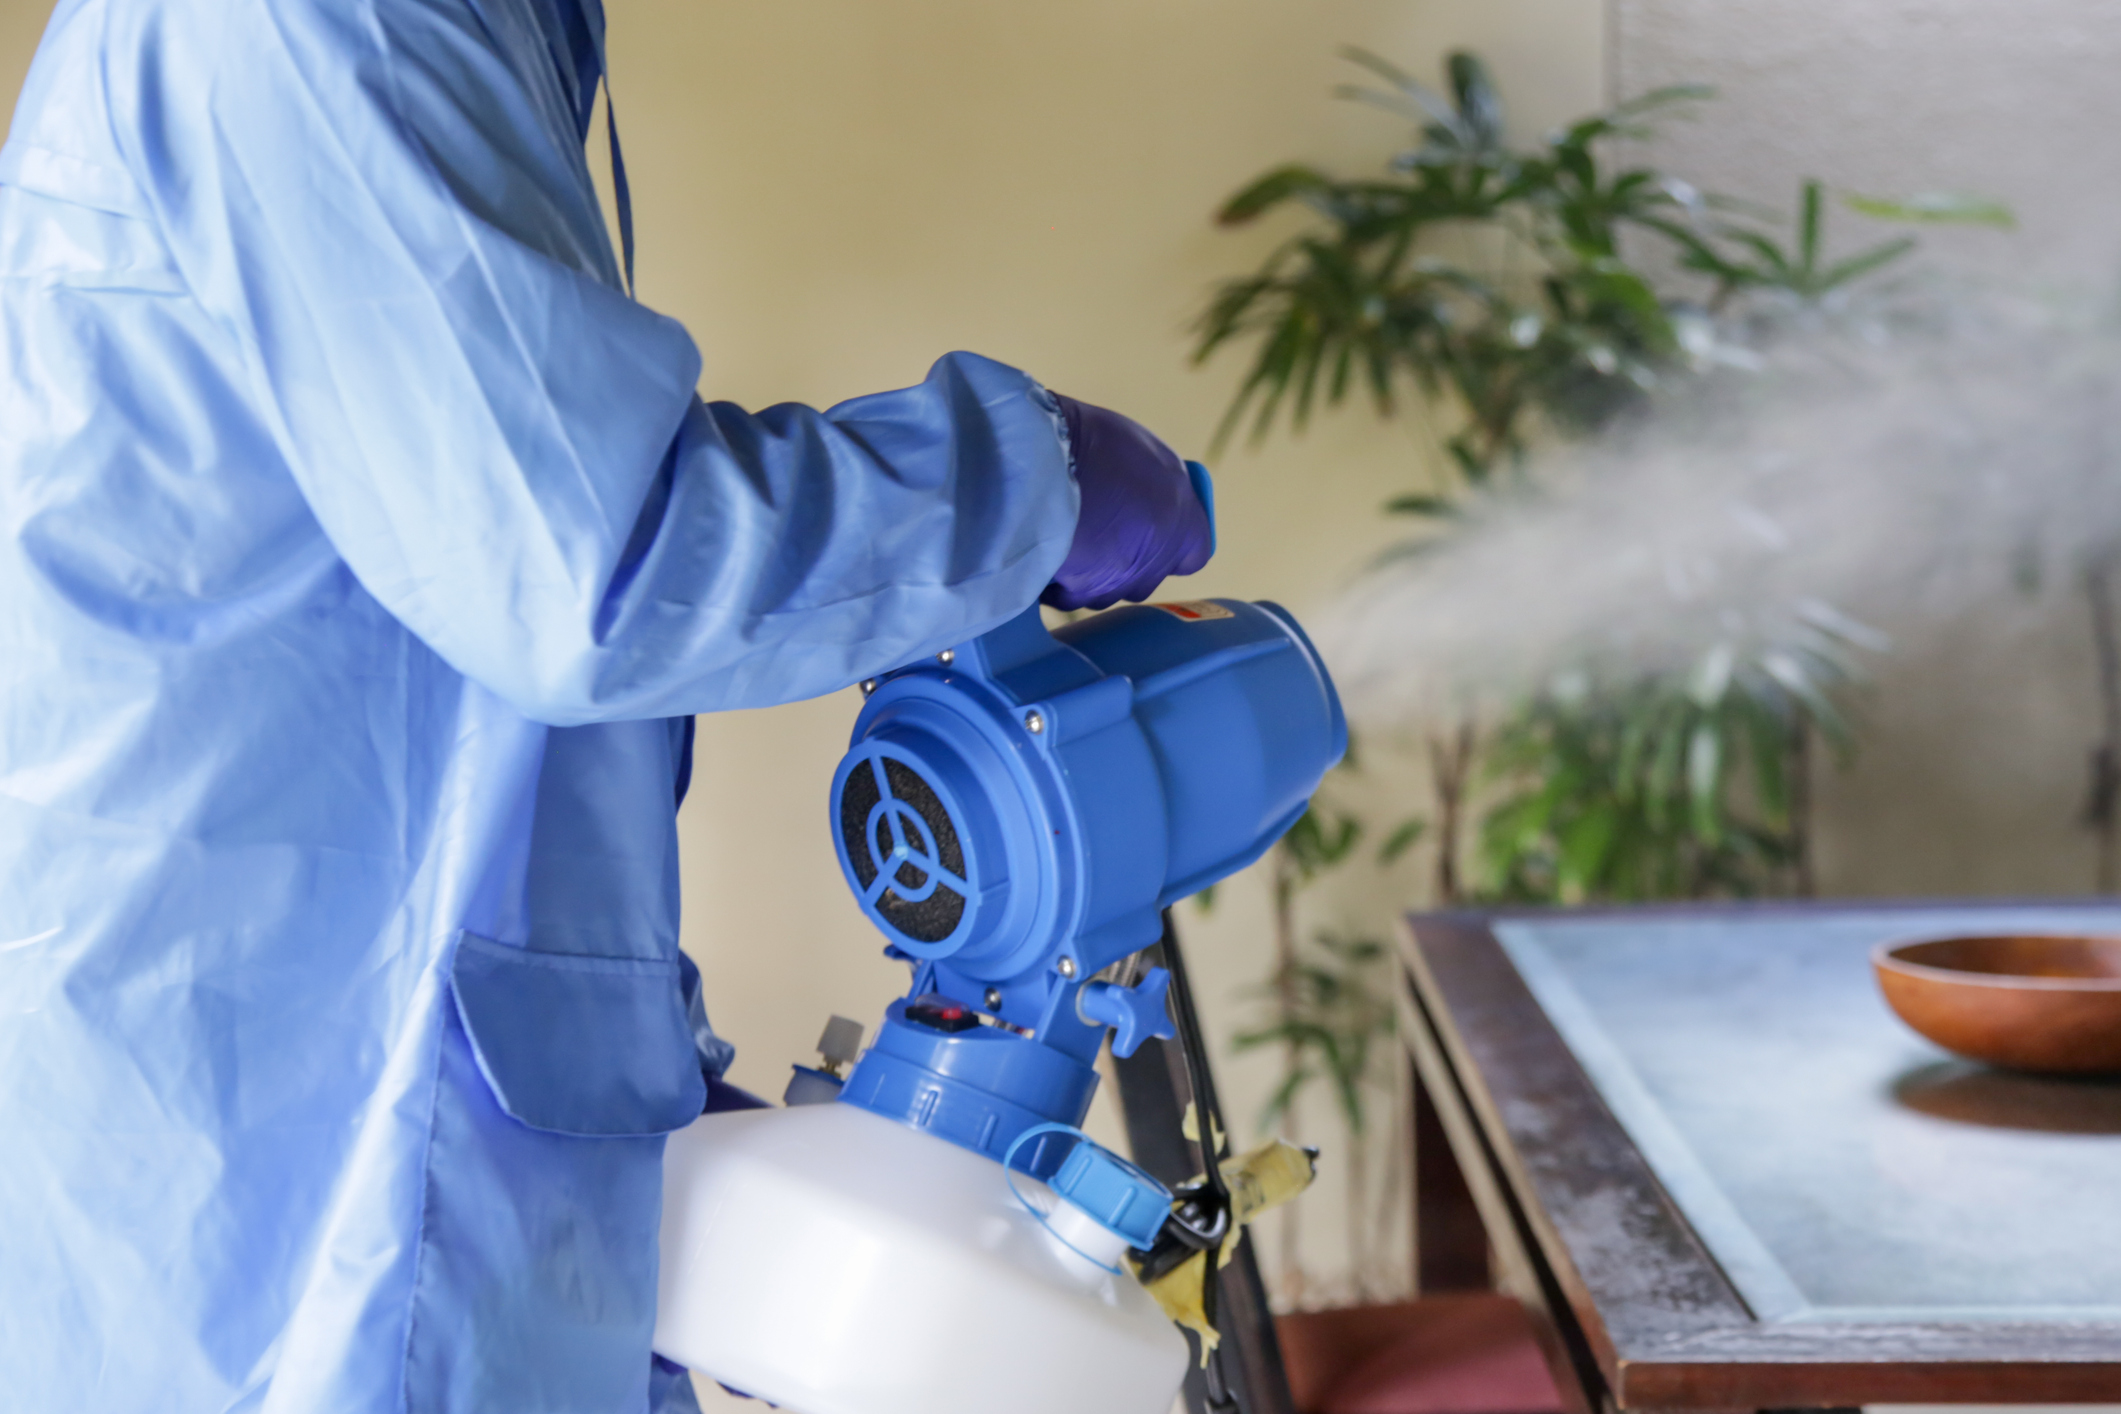 Covid Cleaning - California